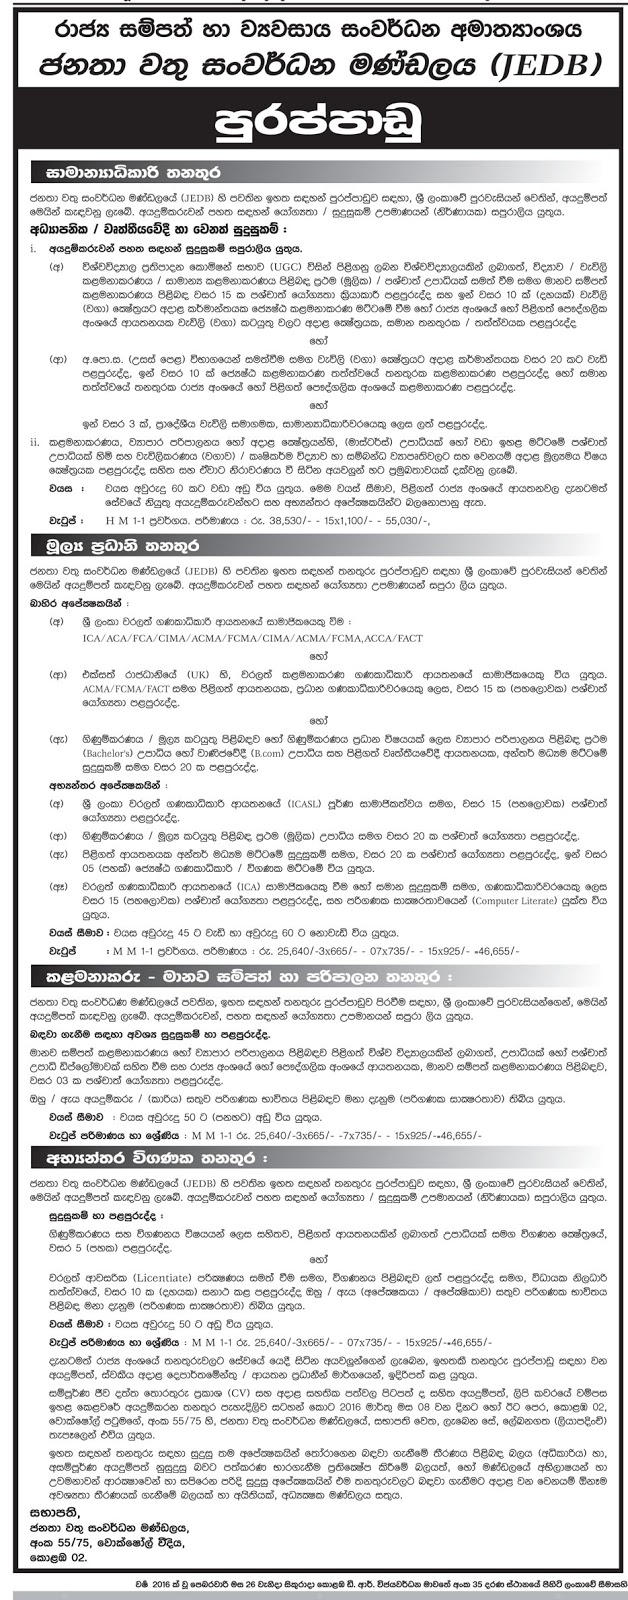 Vacancies - General office - Chief Financial - Manager (Human Resources and Administration role) - the internal audit office - the Janatha Estate Development Board - Ministry of State Resources and Enterprise Development